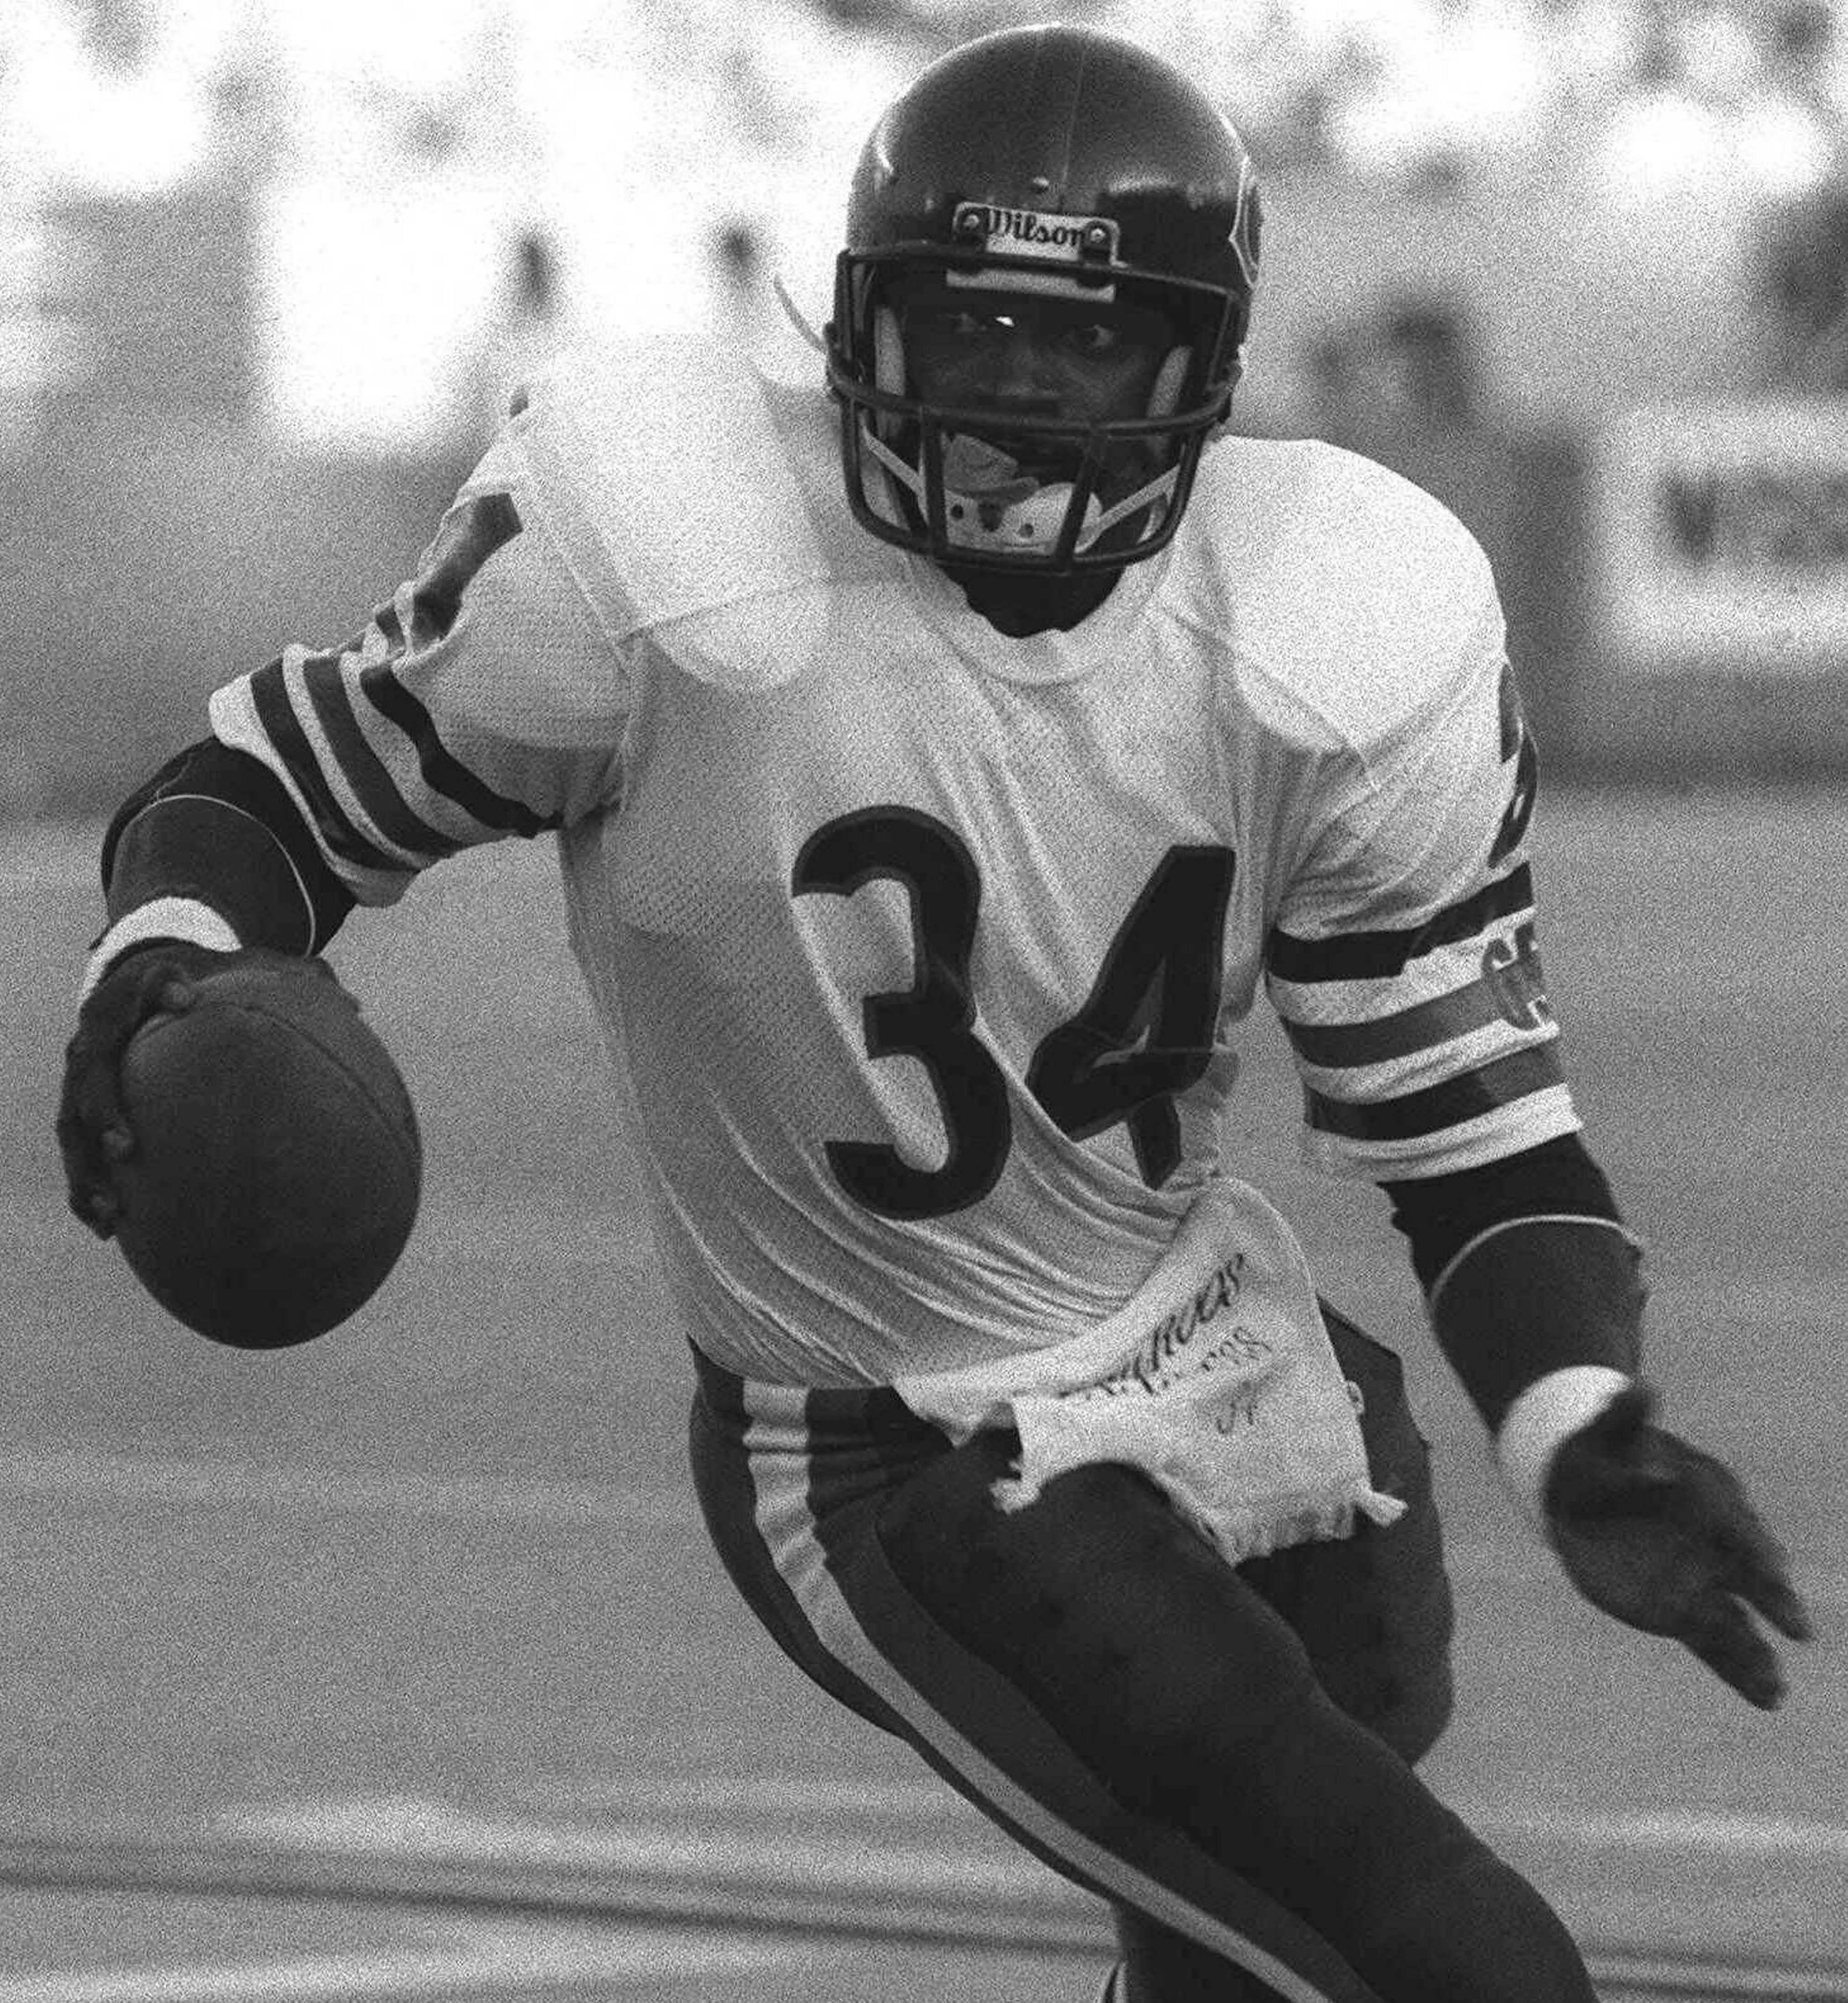 Chicago Bears running back Walter Payton carries the ball at Soldier Field in Chicago in this 1985 photo.